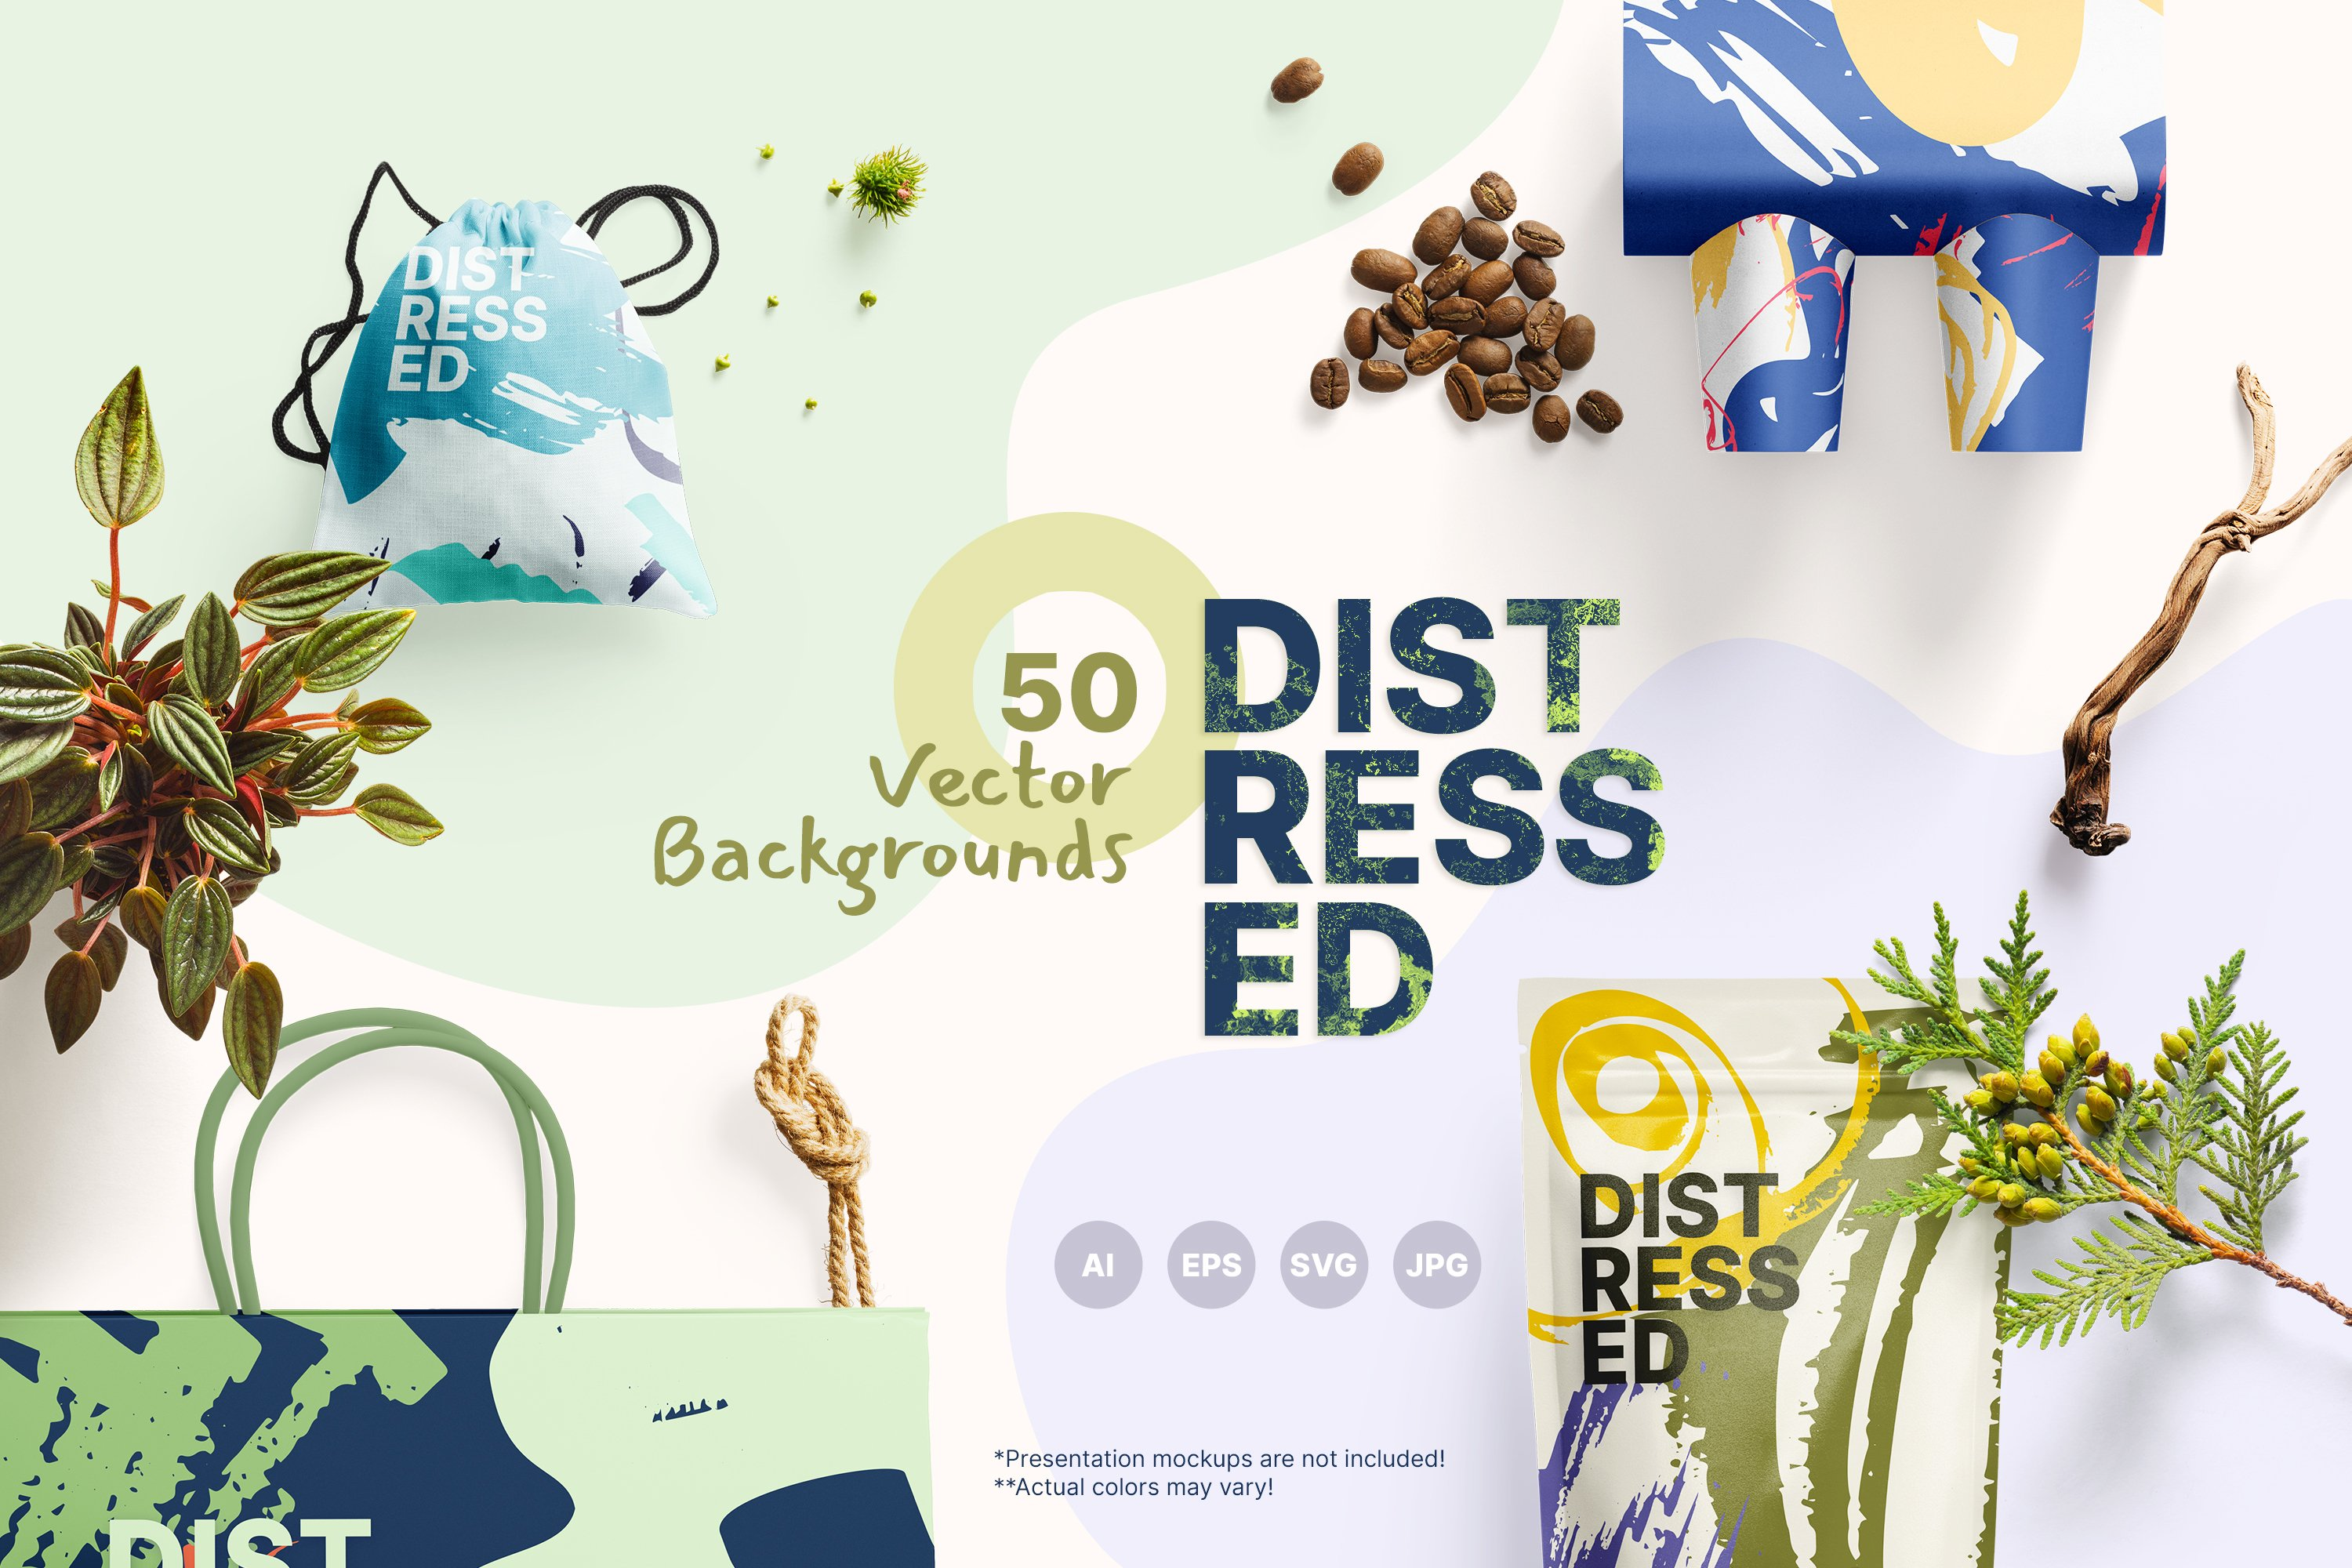 Distressed Vector Backgrounds example image 1